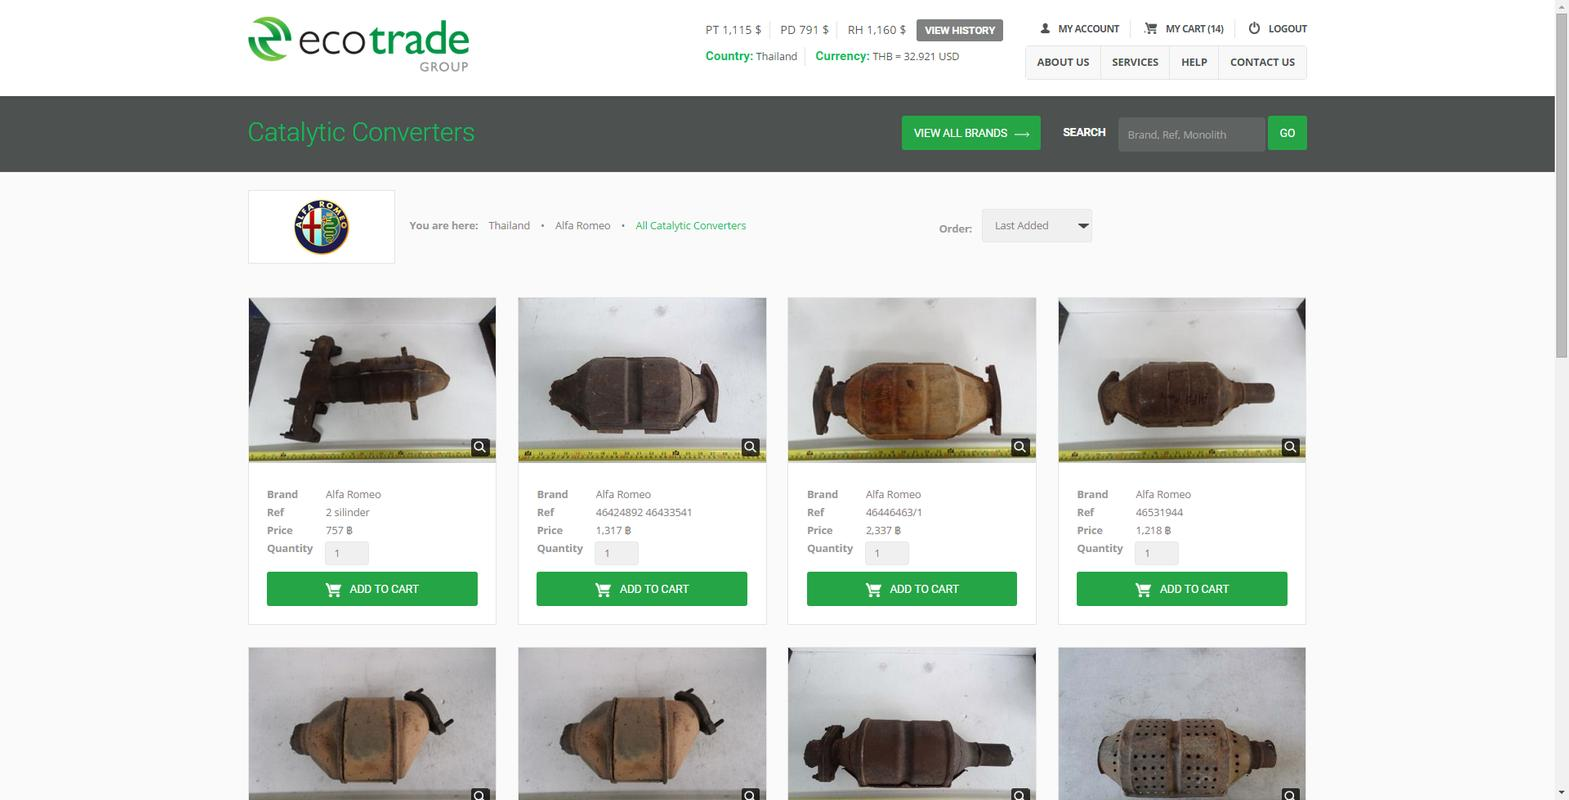 Scrap Catalytic Converter Prices And Pictures >> Ecotrade Group Catalogue APK Download - Free Tools APP for Android   APKPure.com